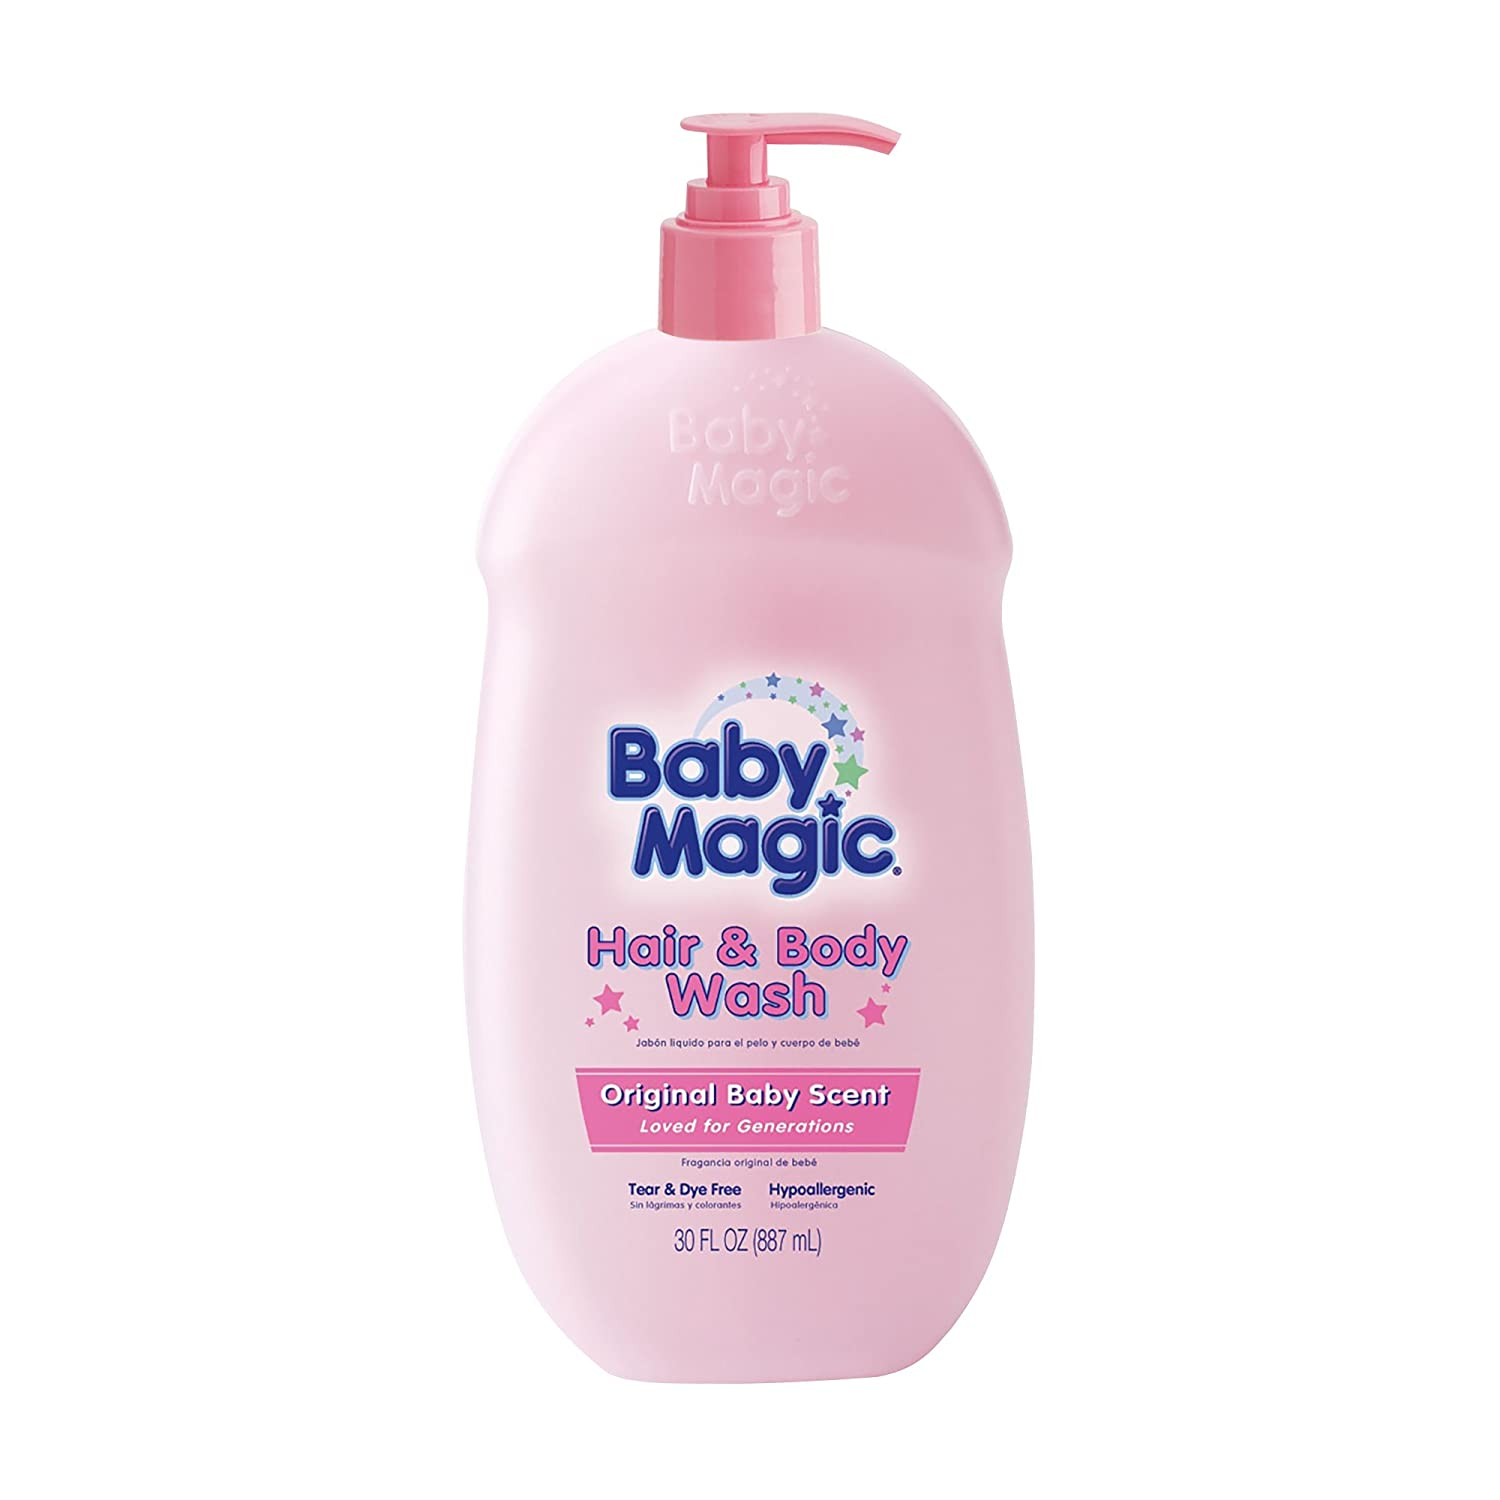 Baby Magic Hair and Body Wash, Original Baby Scent, 30 Ounces NATERRA494195